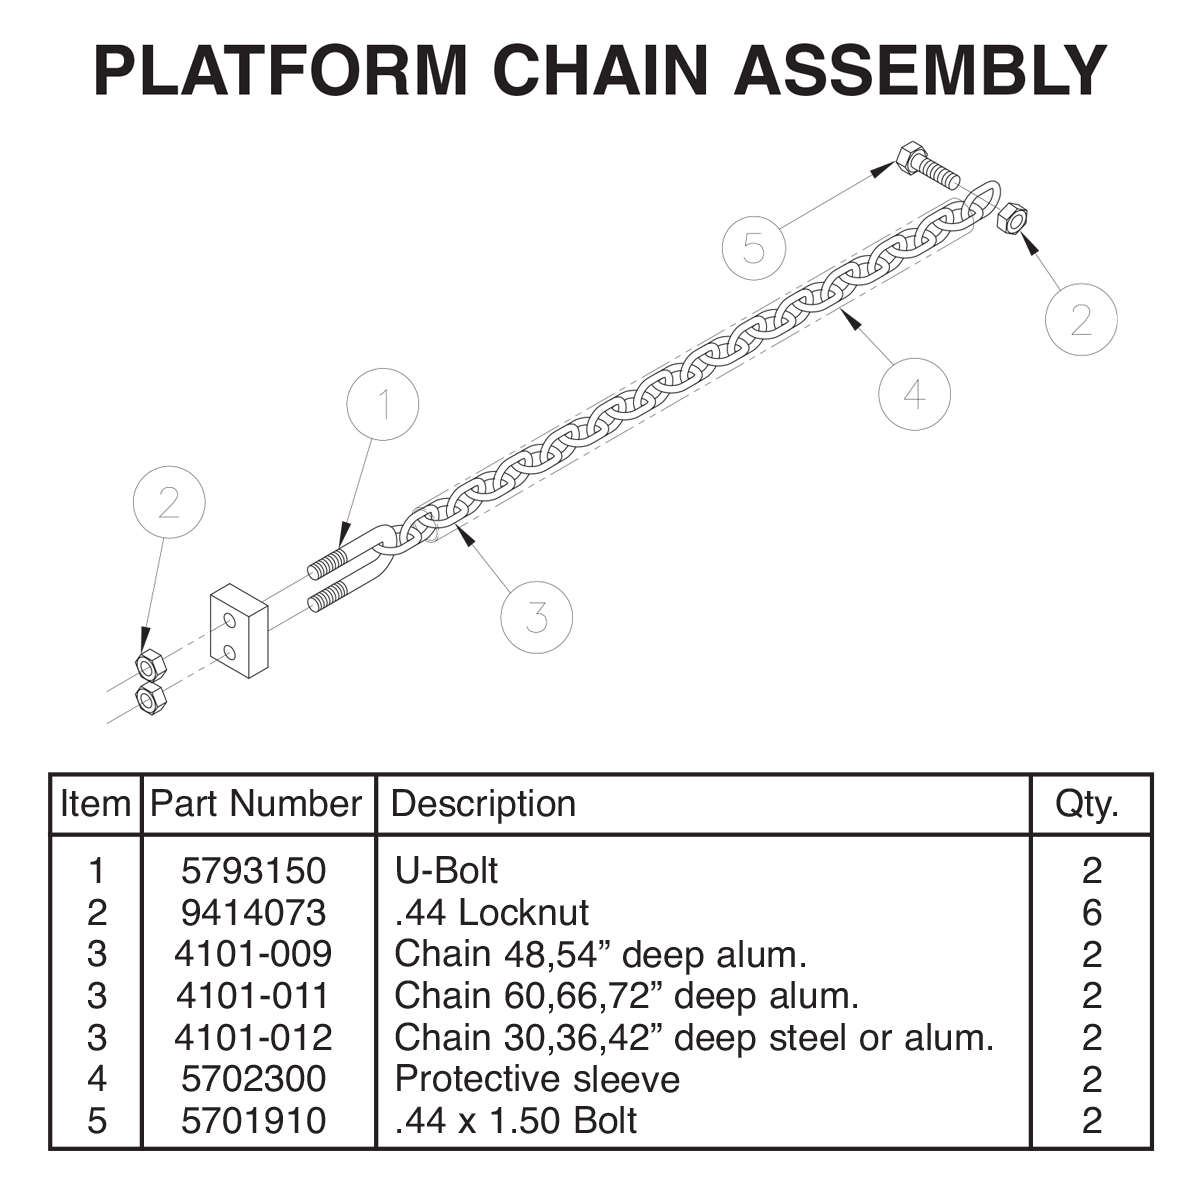 TVLR 20/20A Platform Chain Assembly Diagram